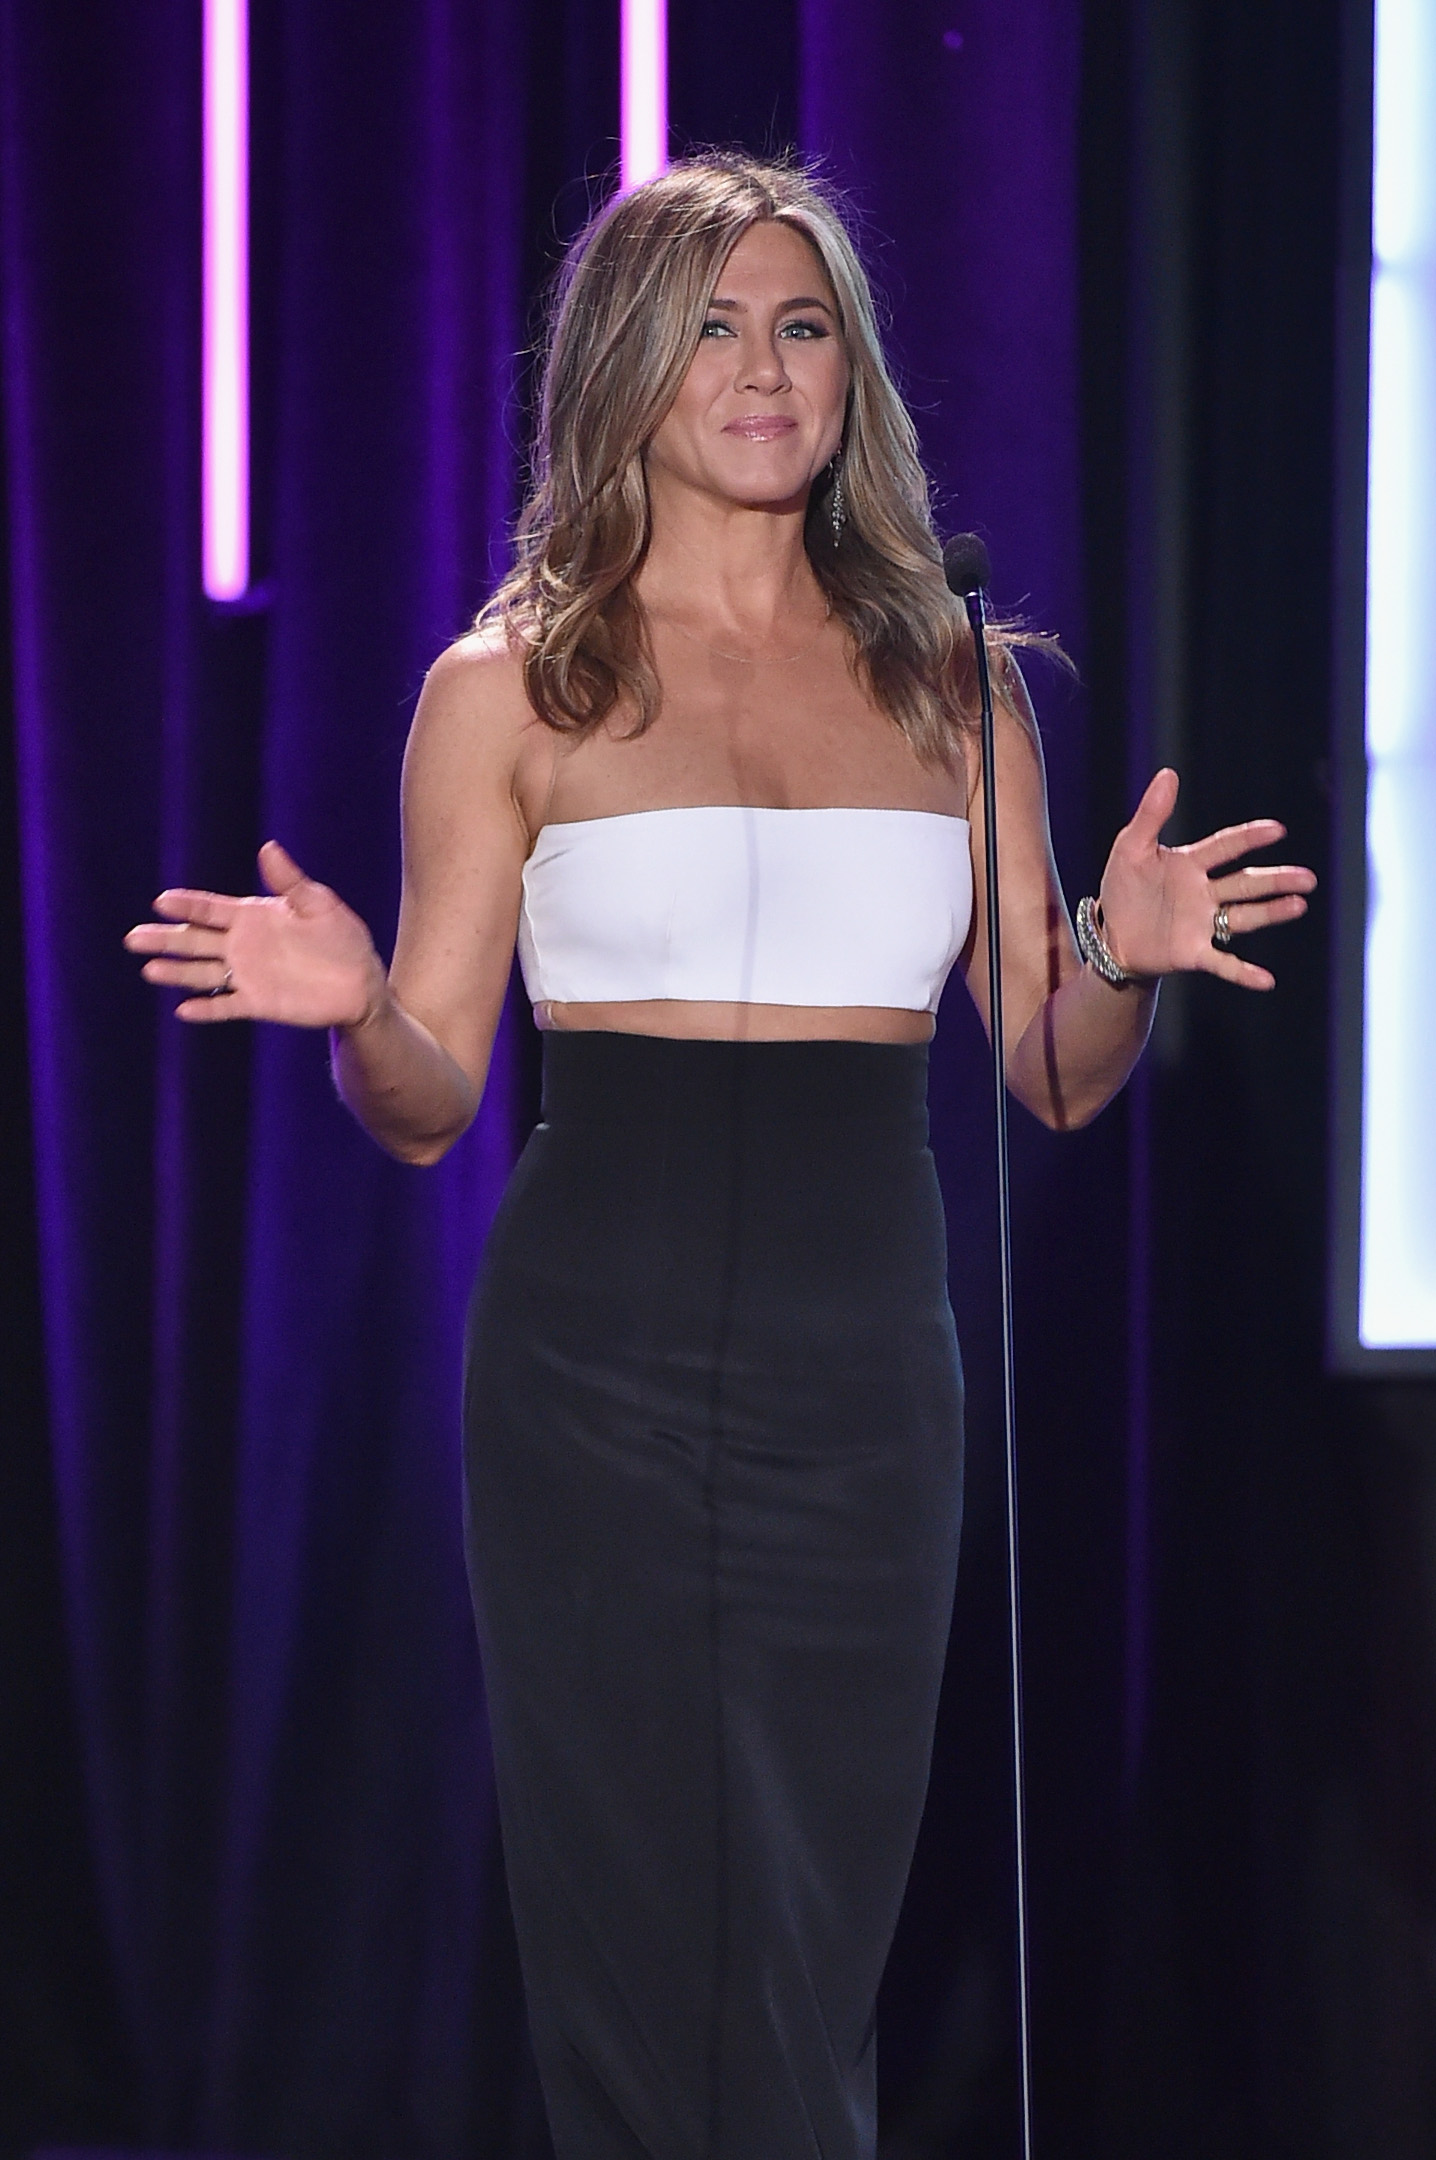 LOS ANGELES, CA - OCTOBER 30: Actress Jennifer Aniston speaks onstage during the 29th American Cinematheque Award honoring Reese Witherspoon at the Hyatt Regency Century Plaza on October 30, 2015 in Los Angeles, California. (Photo by Kevin Winter/Getty Images)